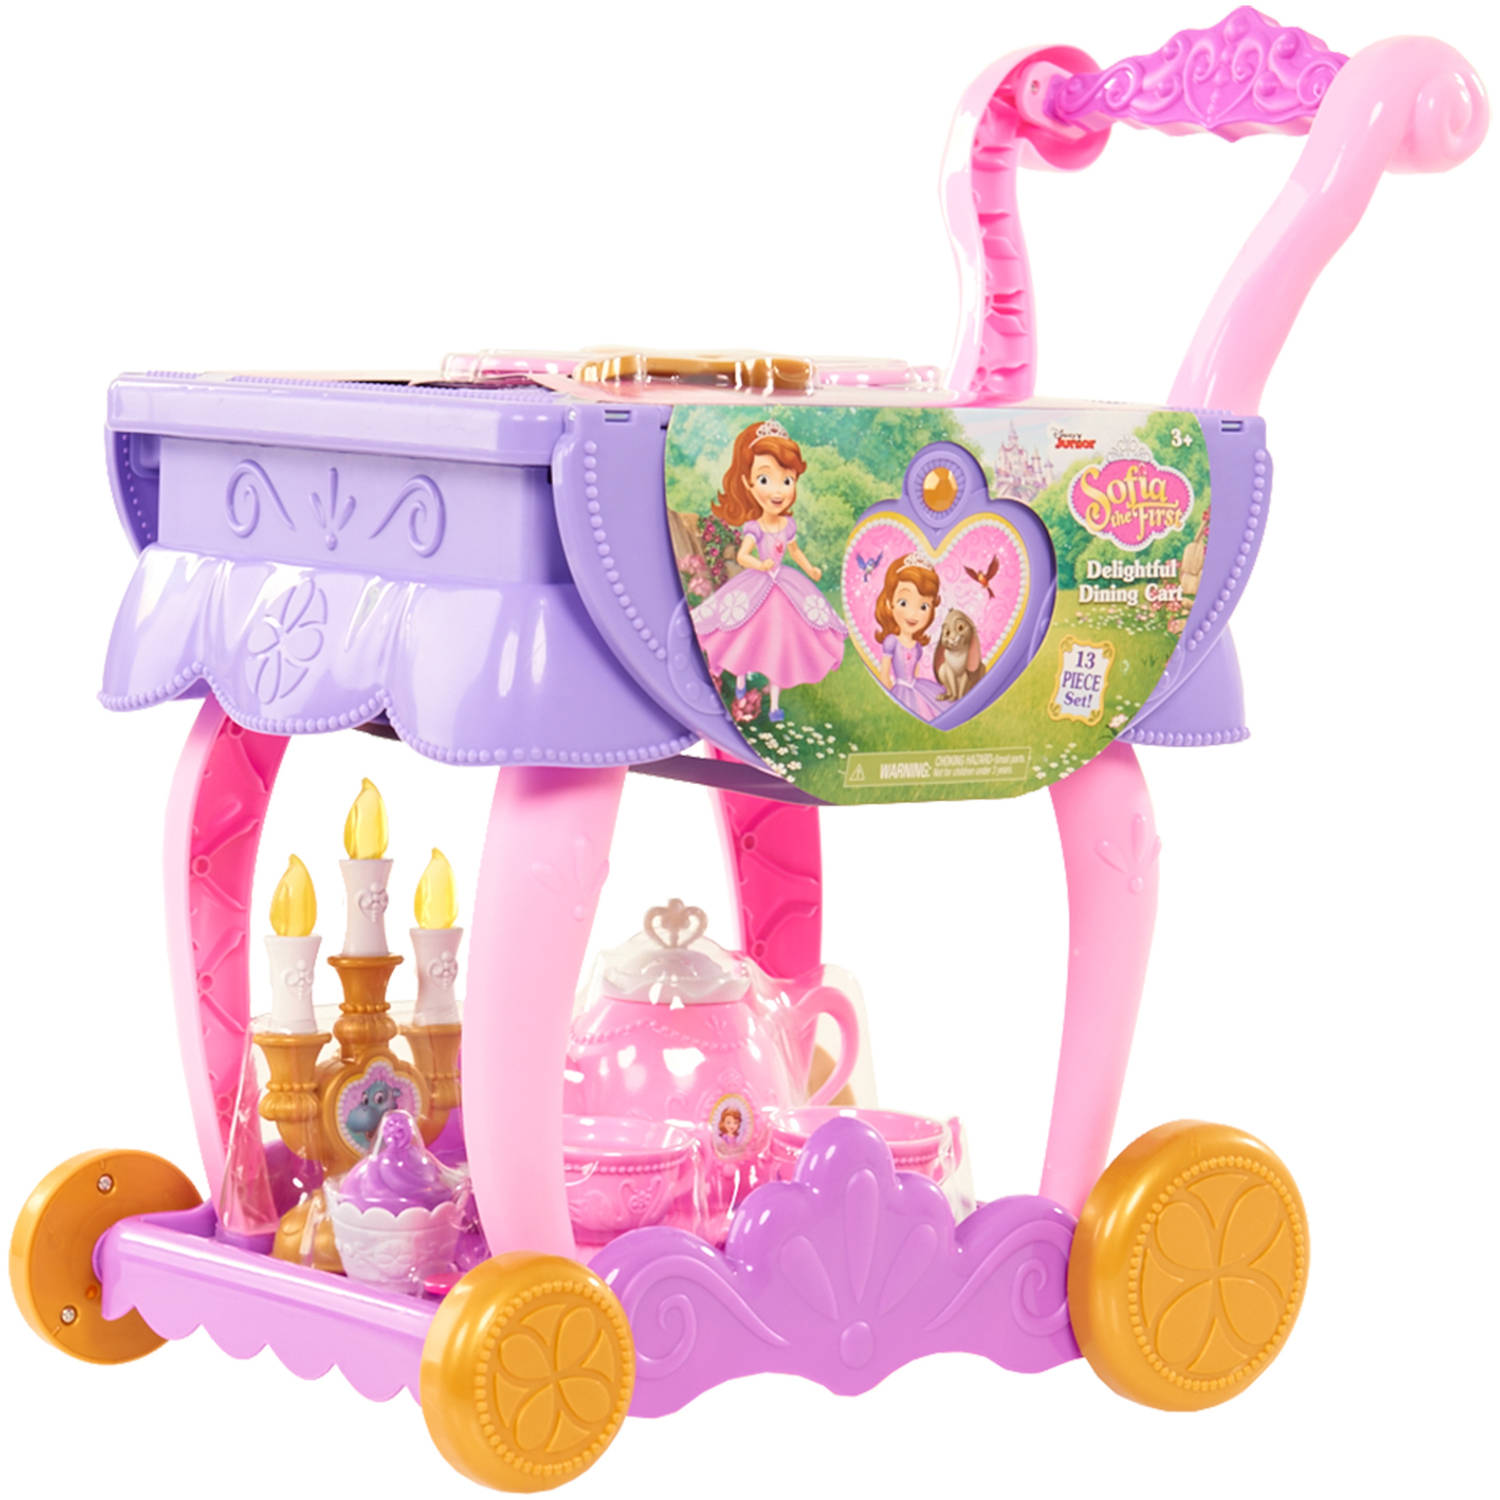 Disney Sofia The First 13 Piece Delightful Dining Cart